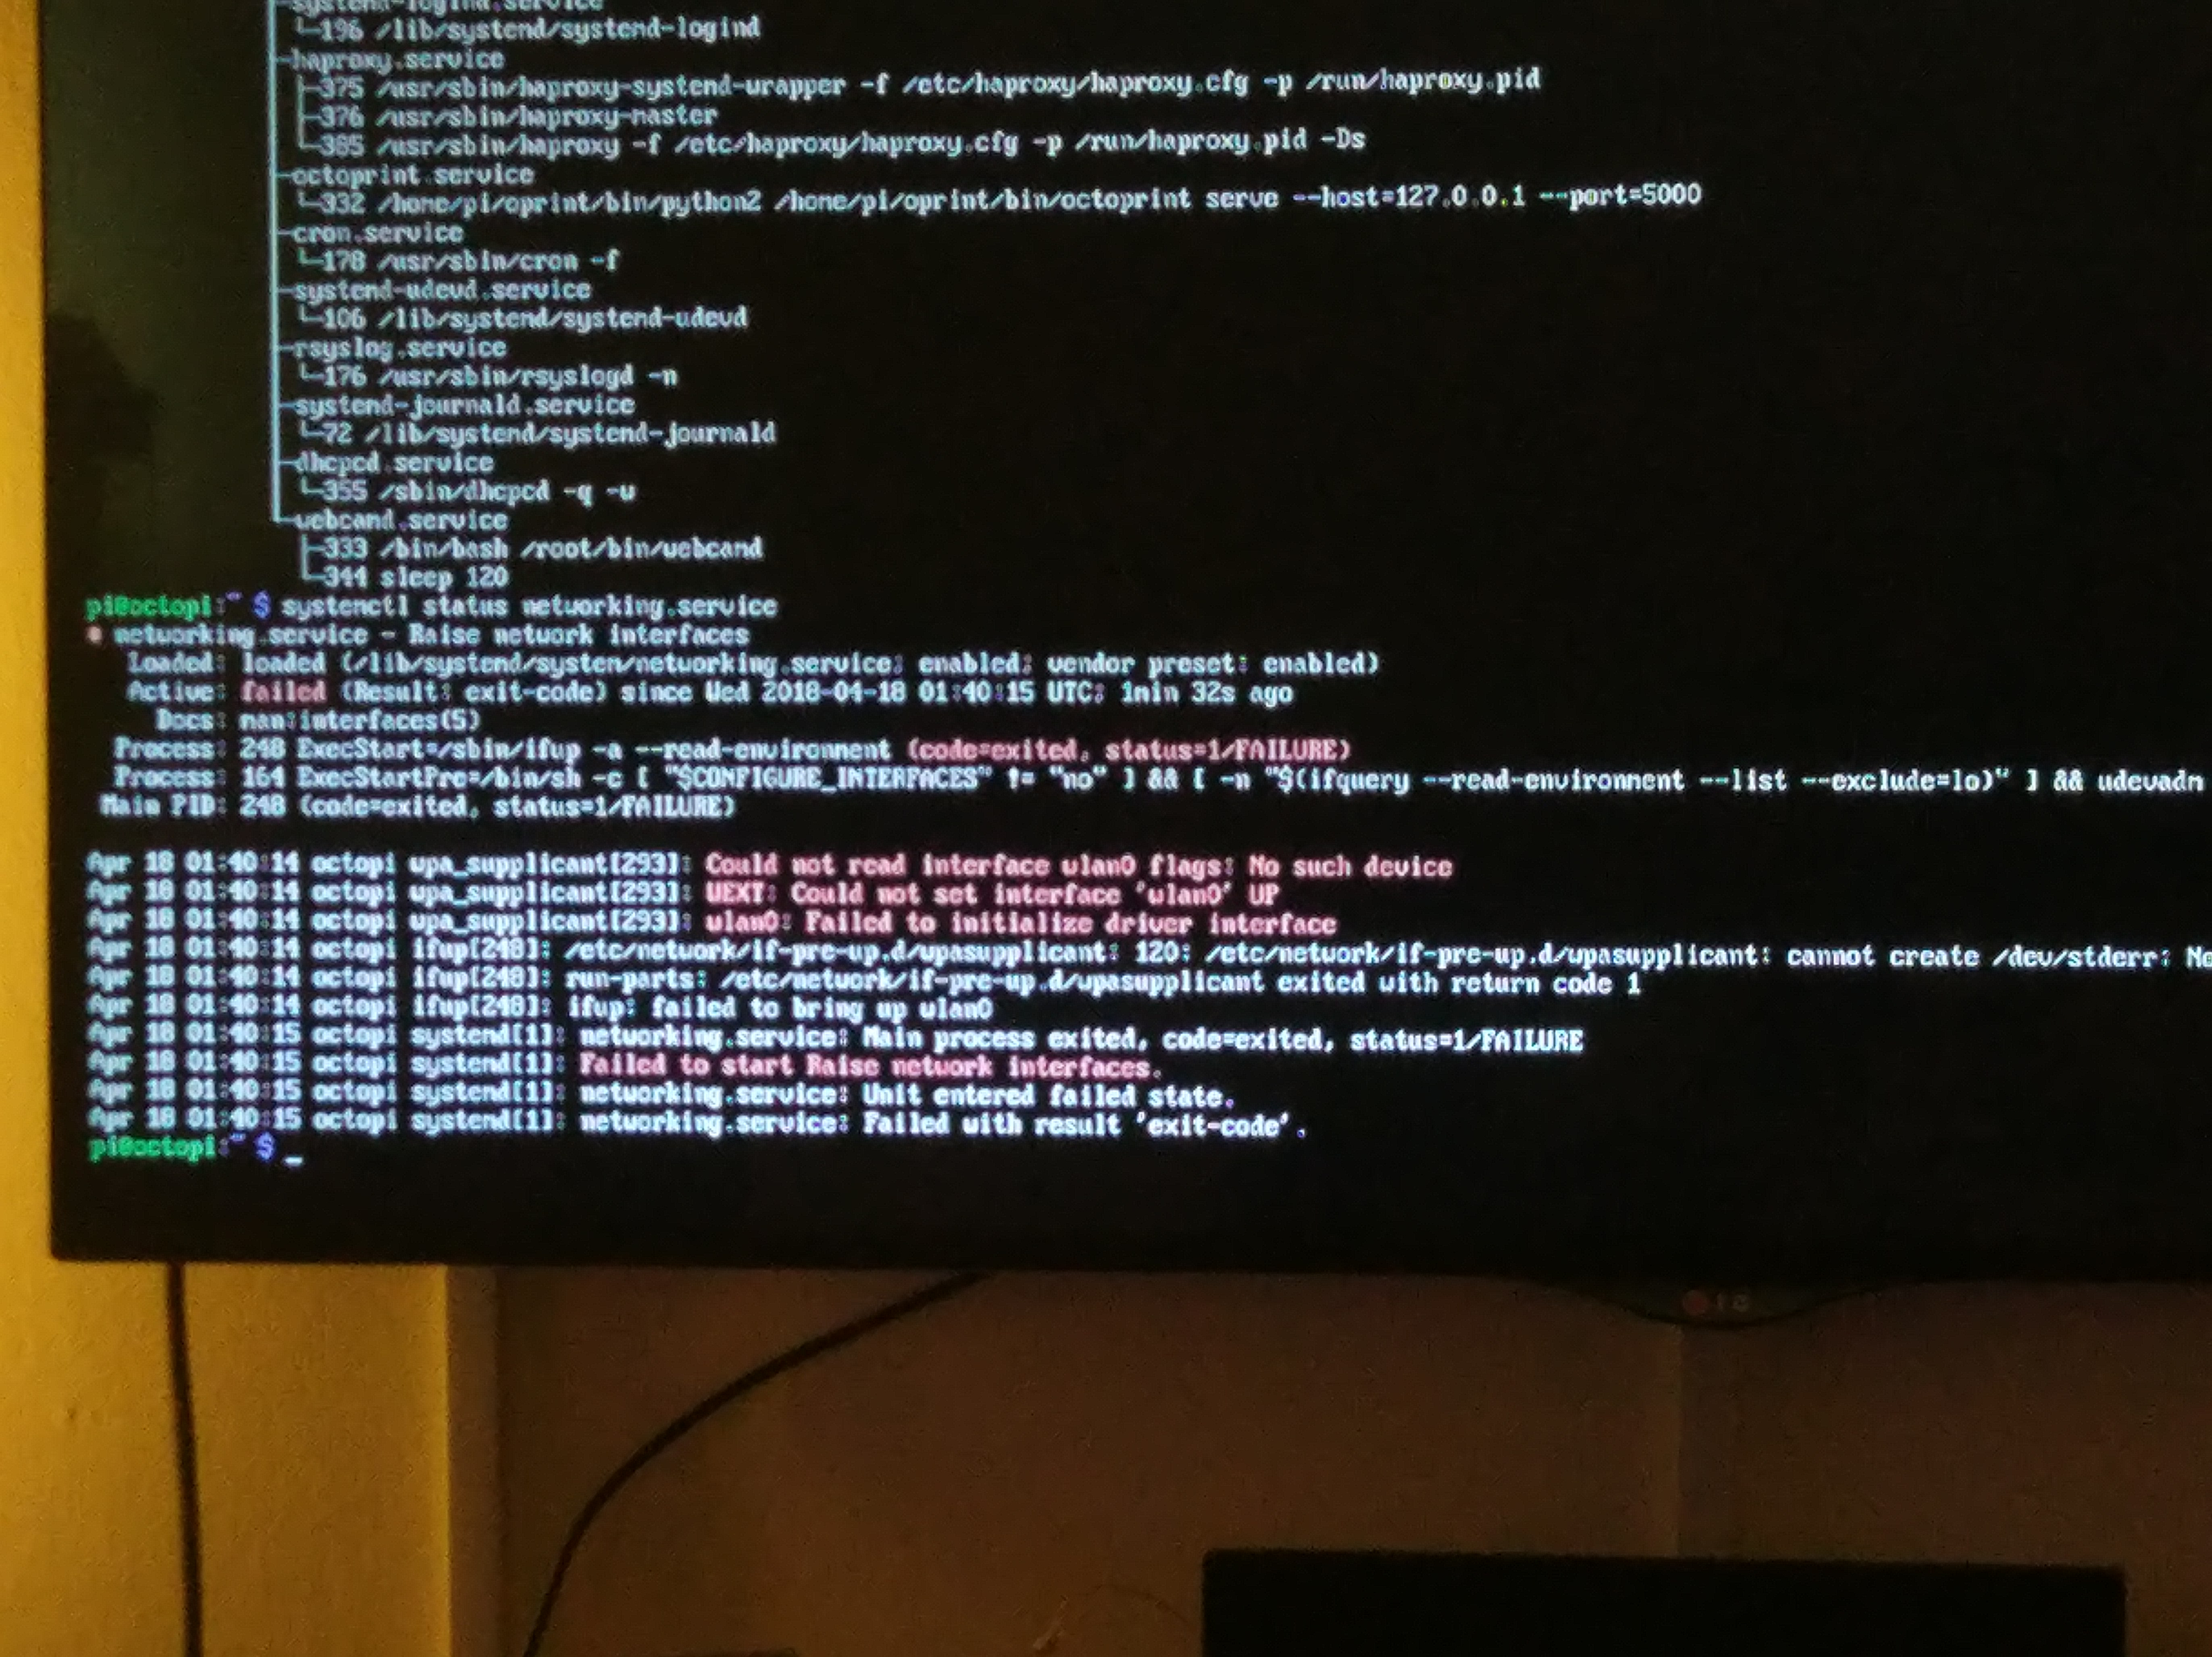 Wlan0 not detected on pi0 with build 0 15 - Get Help - OctoPrint